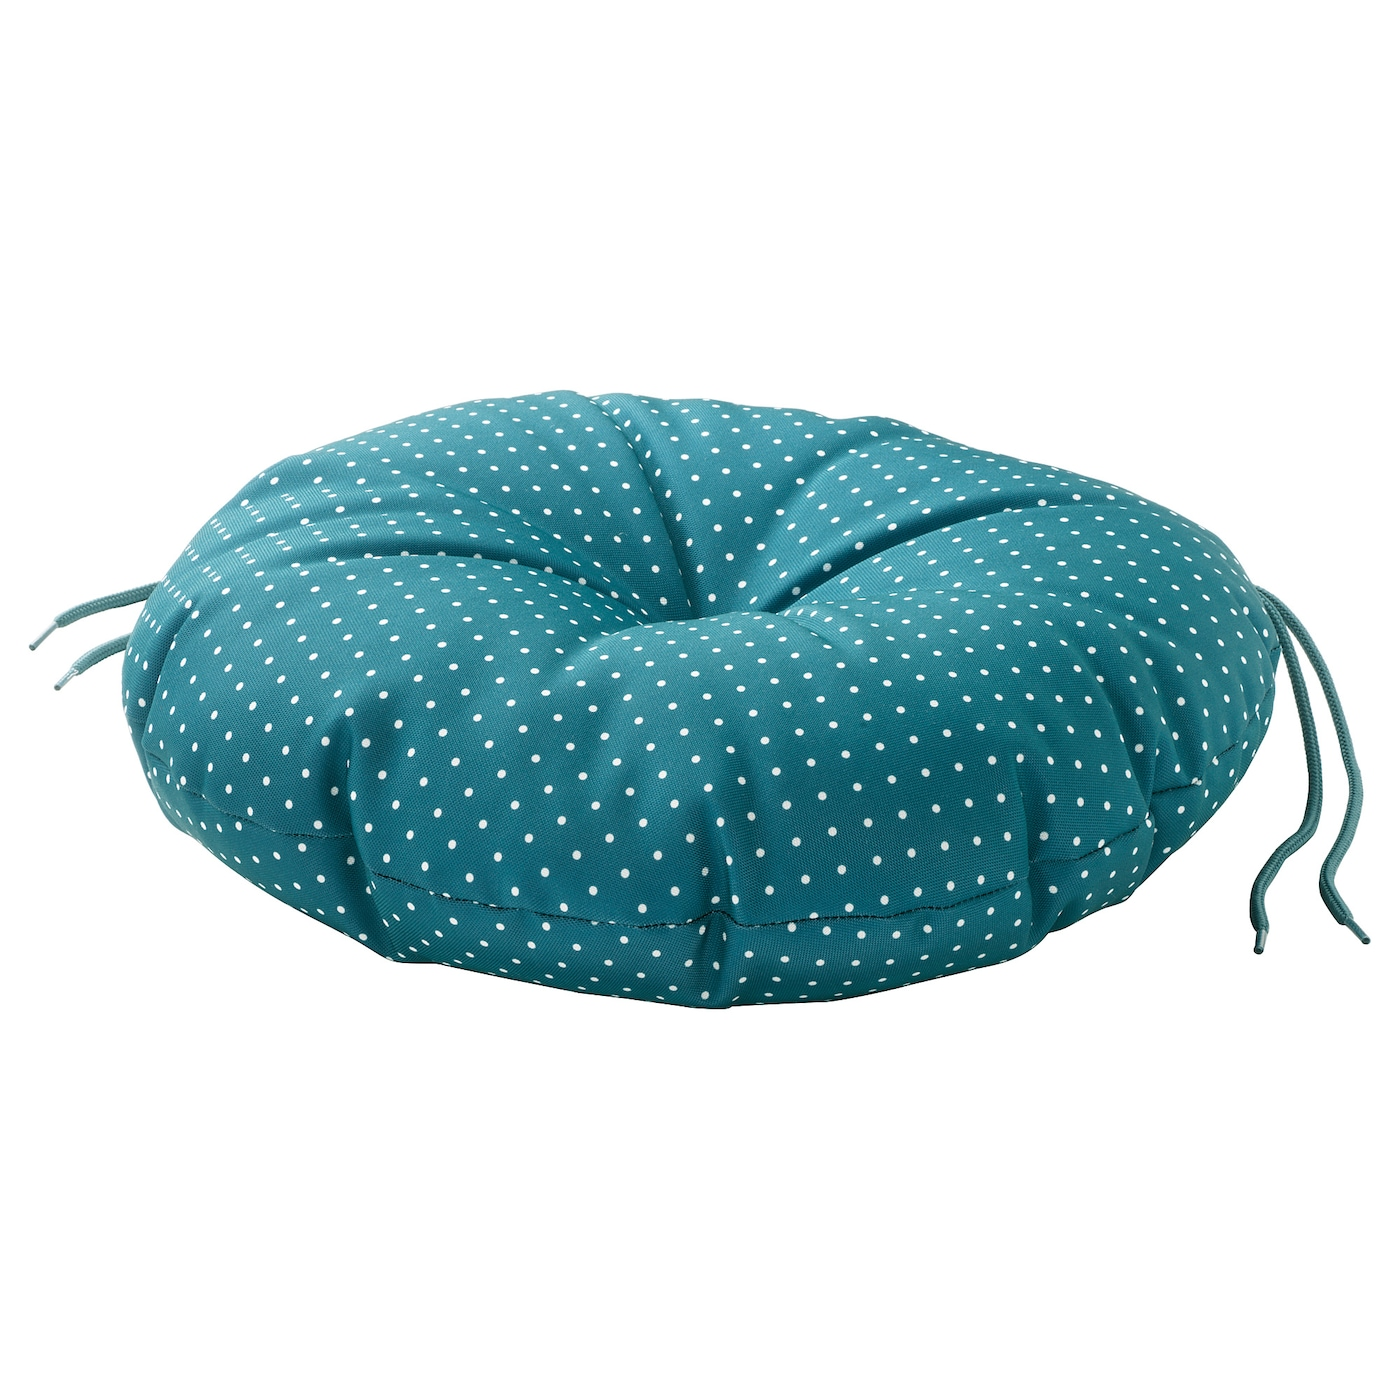 IKEA YTTERÖN chair cushion, outdoor Ties keep the cushion firmly in place on the chair.